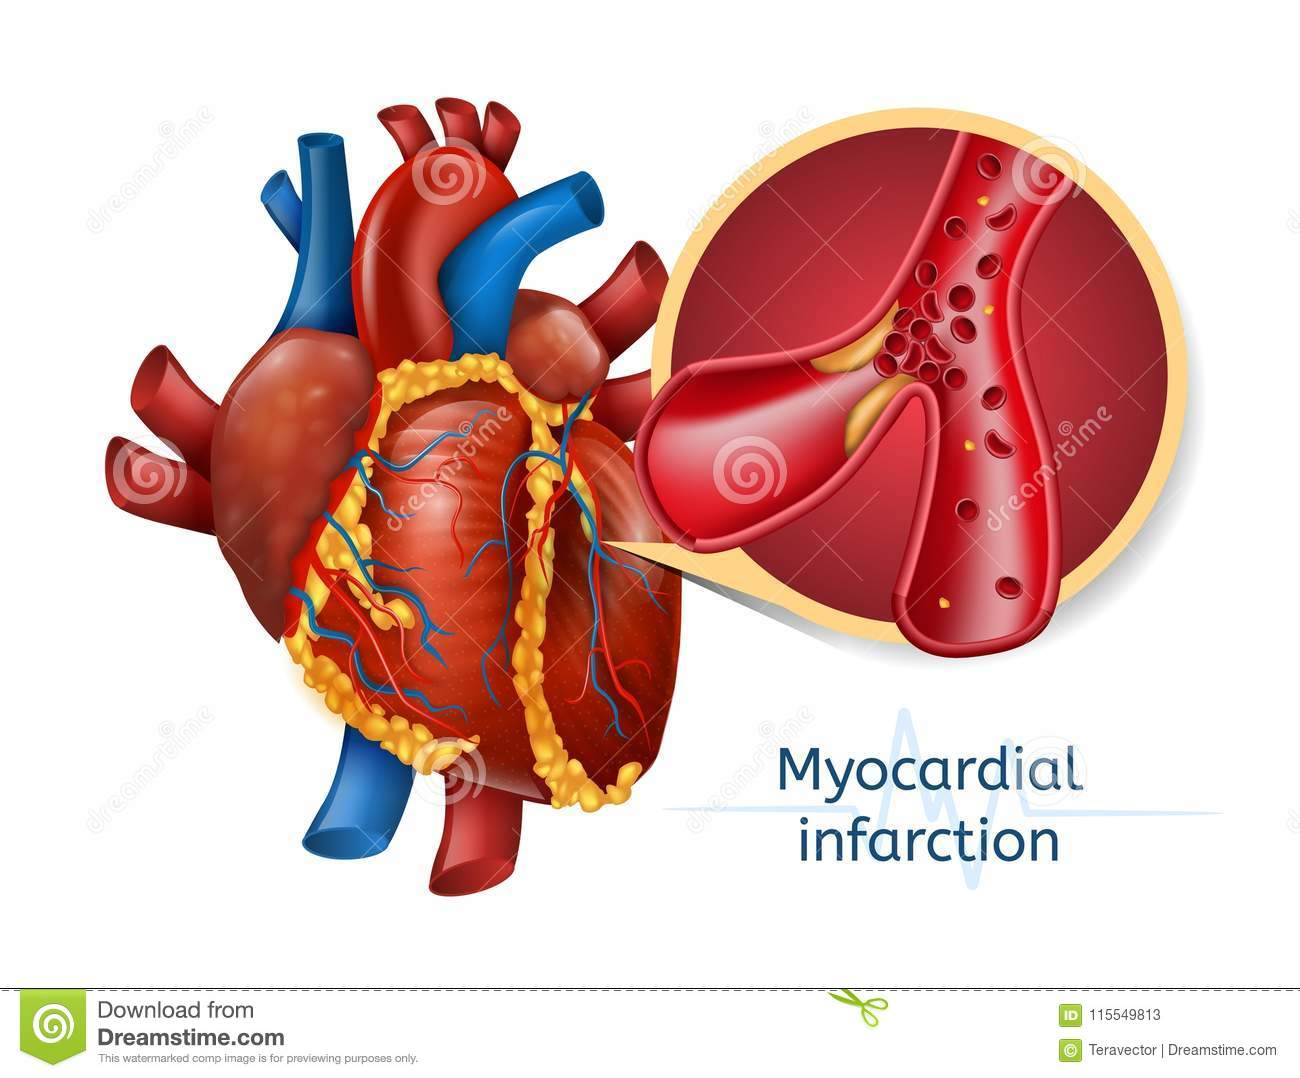 Myocardial Infarction 3d Realostic Heart Stock Vector